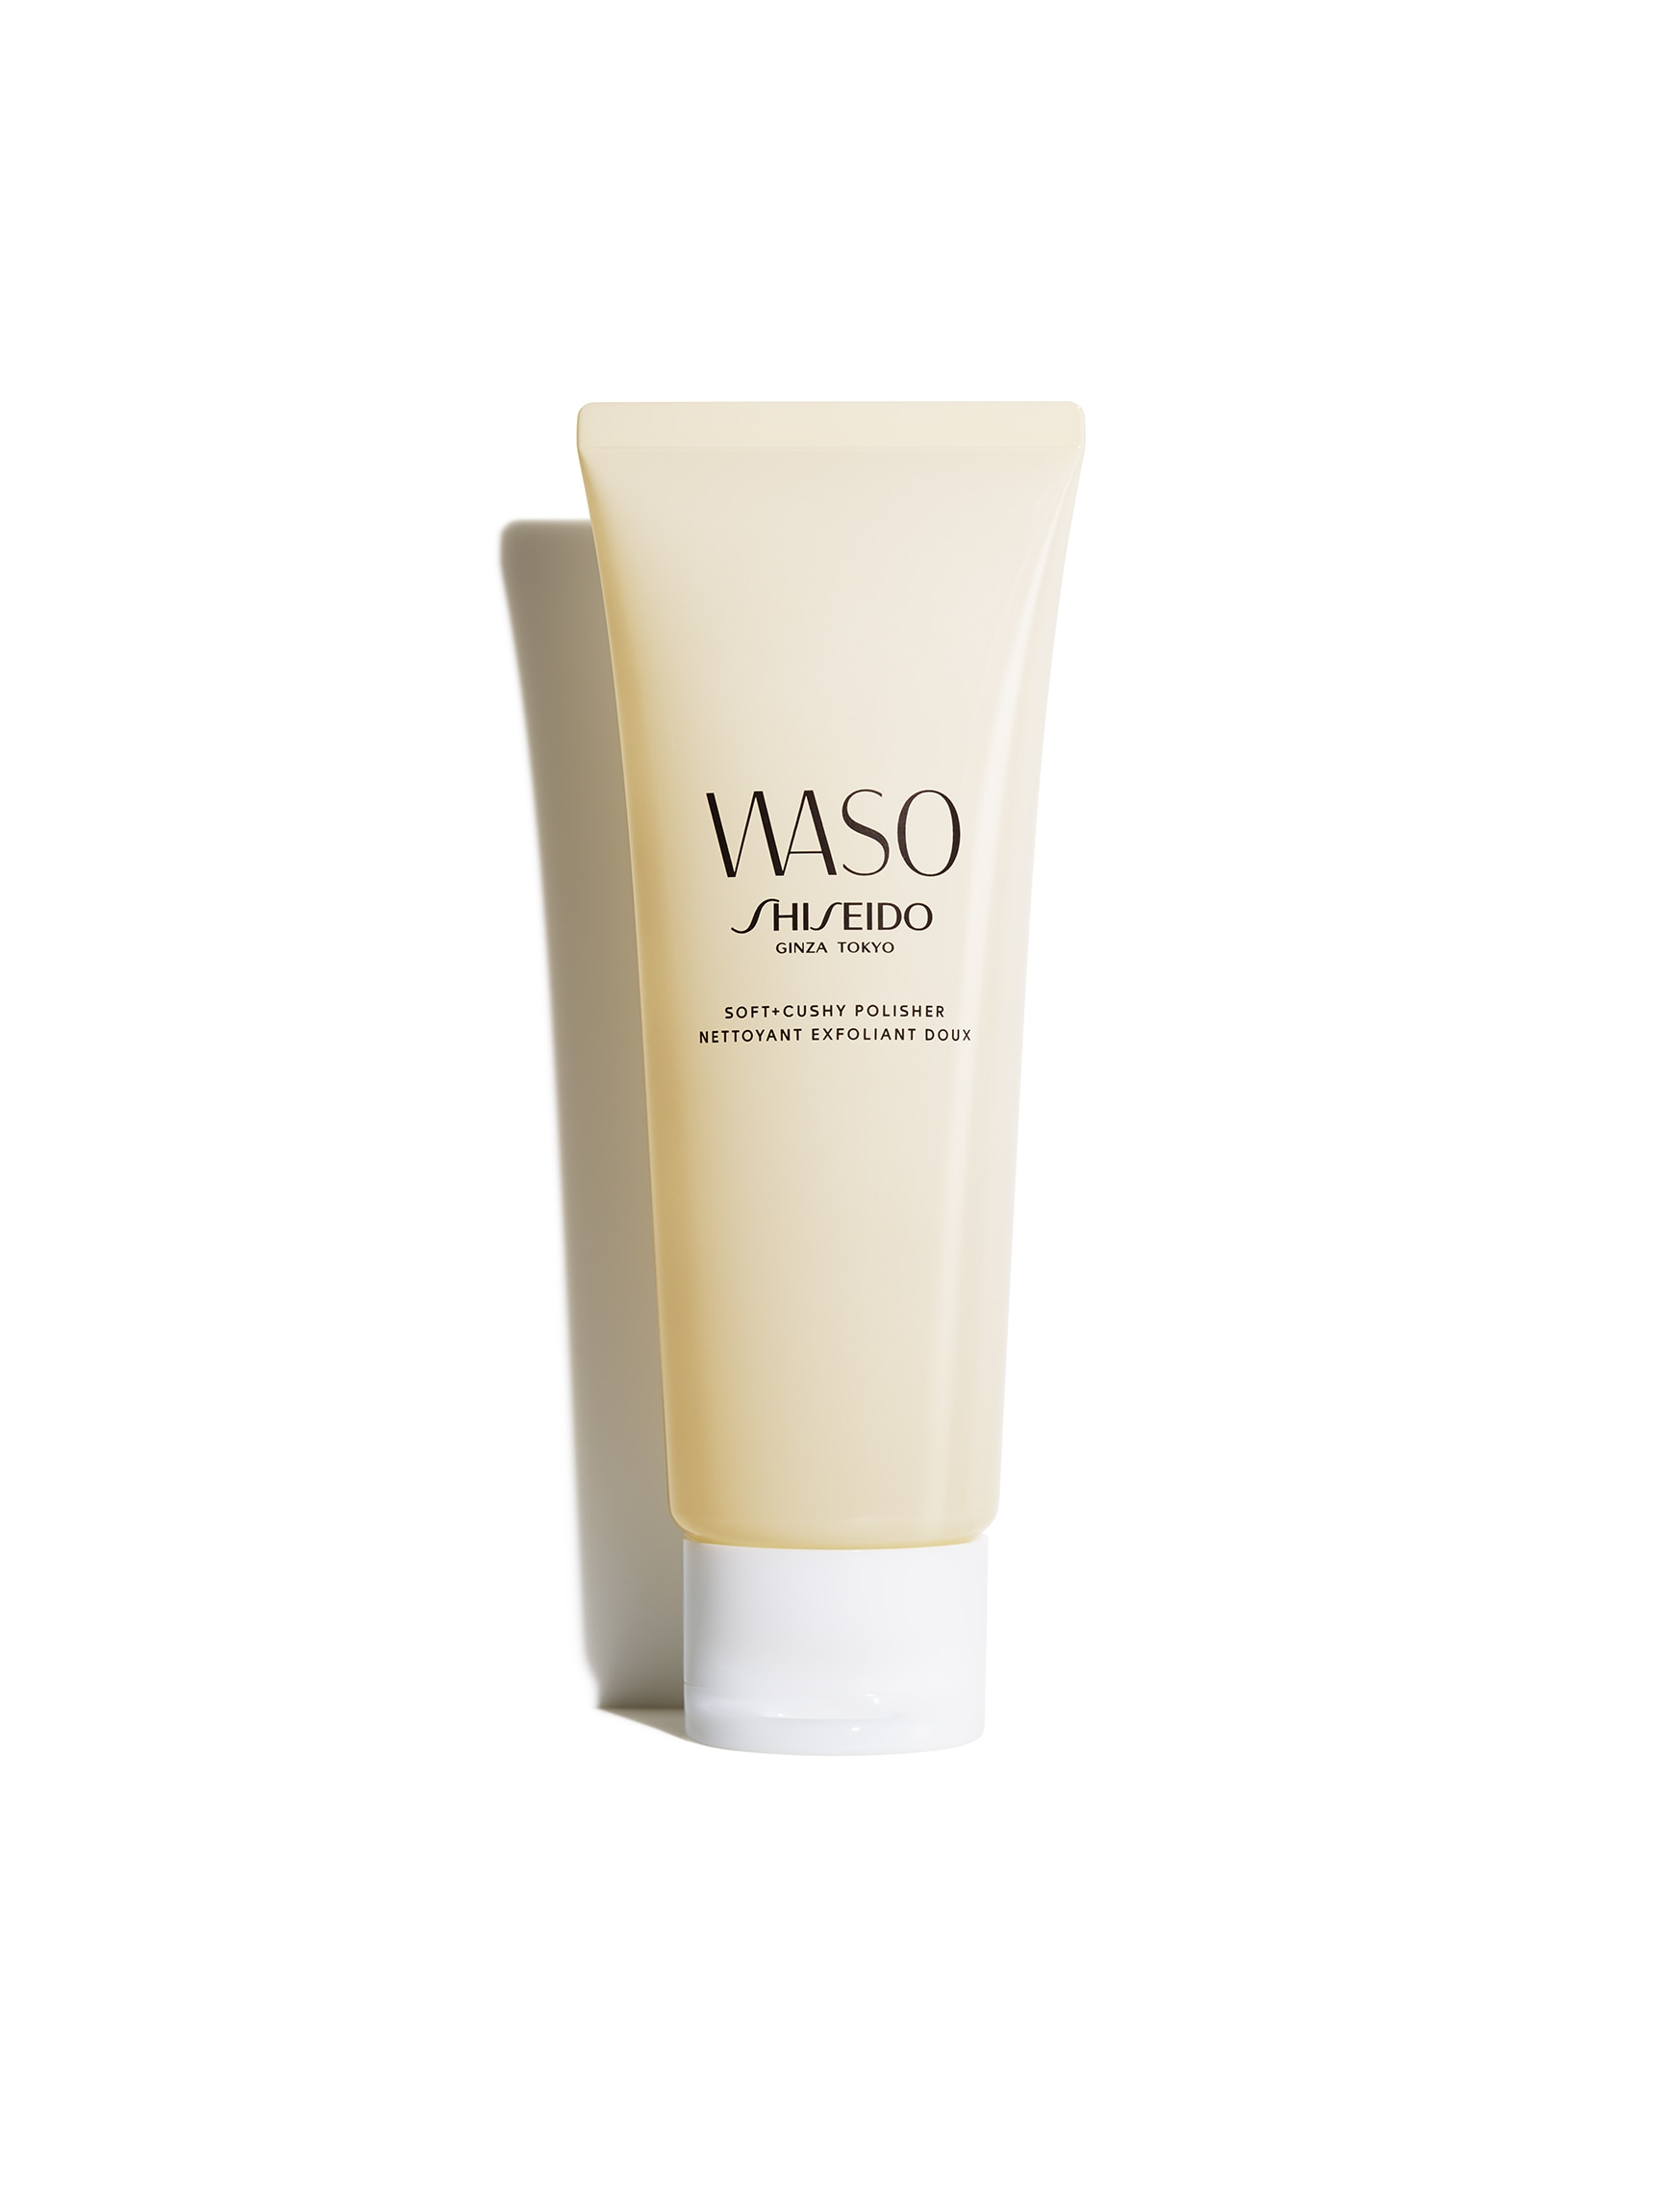 WASO SOFT AND CUSHY POLISHER 75ML